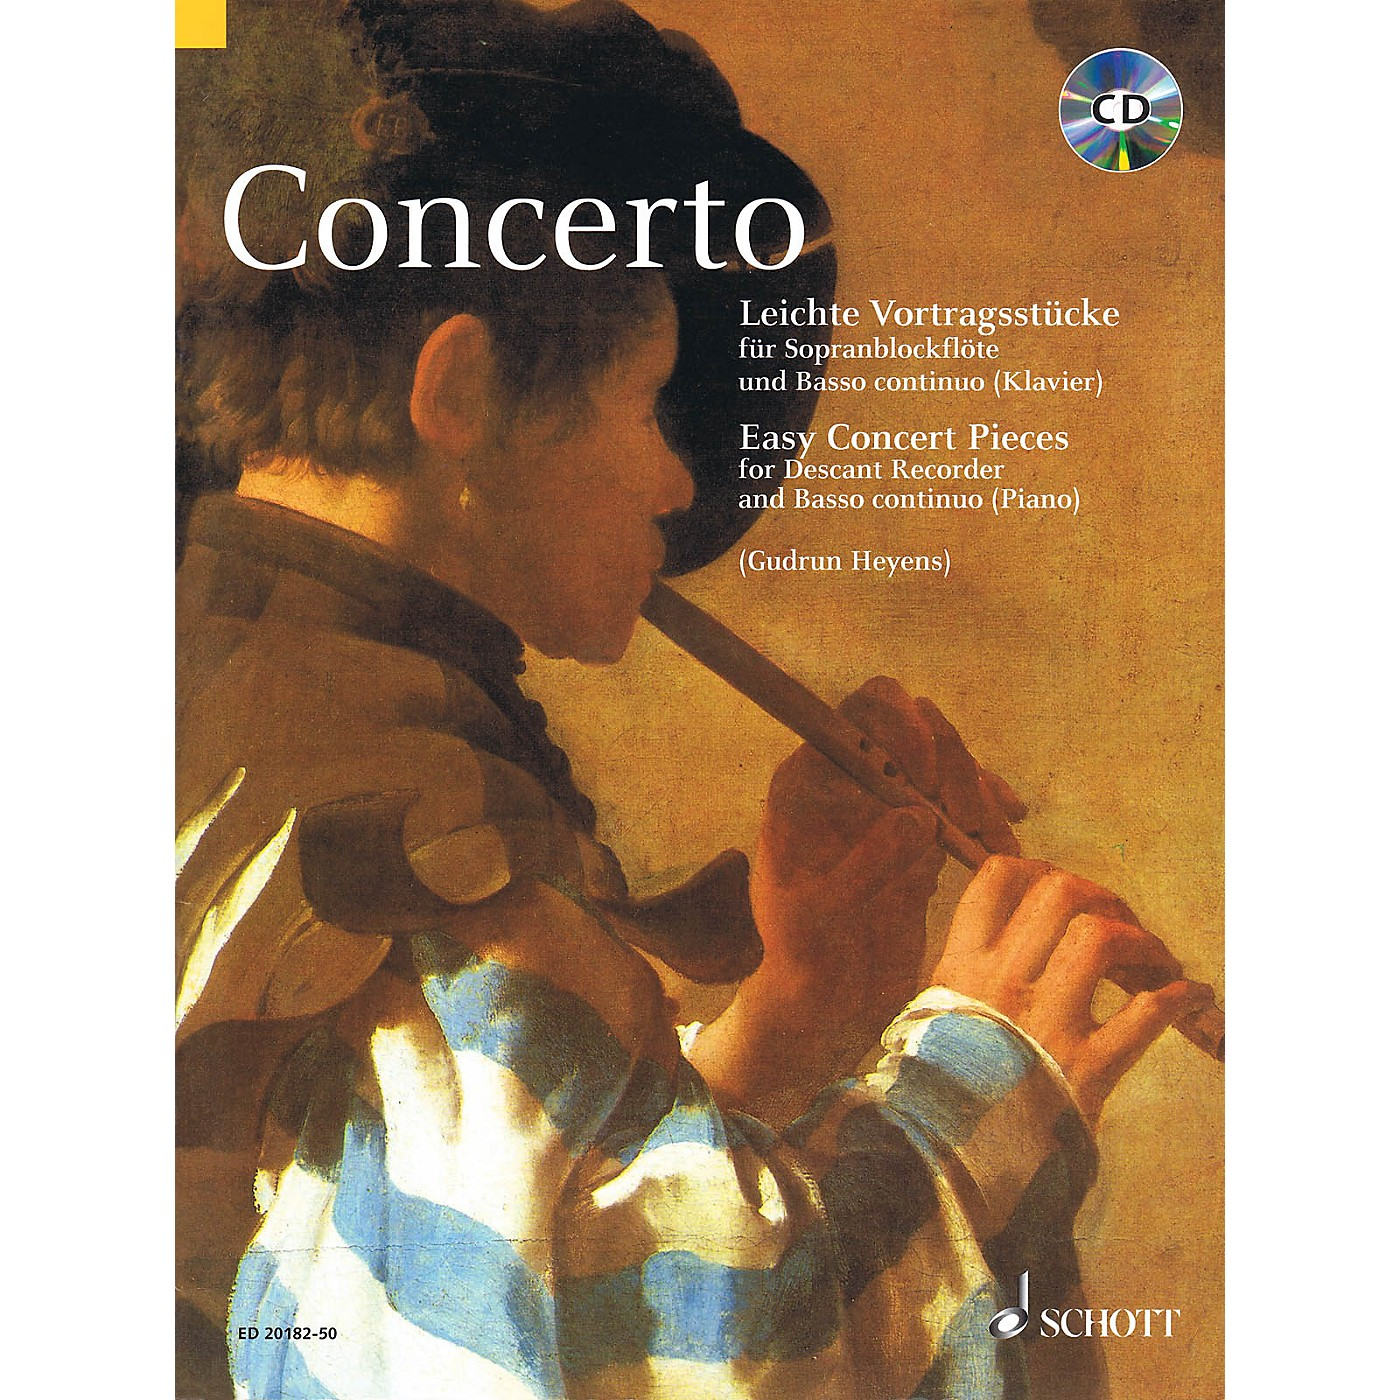 Schott Concerto Schott Series Softcover with CD  by Various Edited by Gudrun Heyens thumbnail